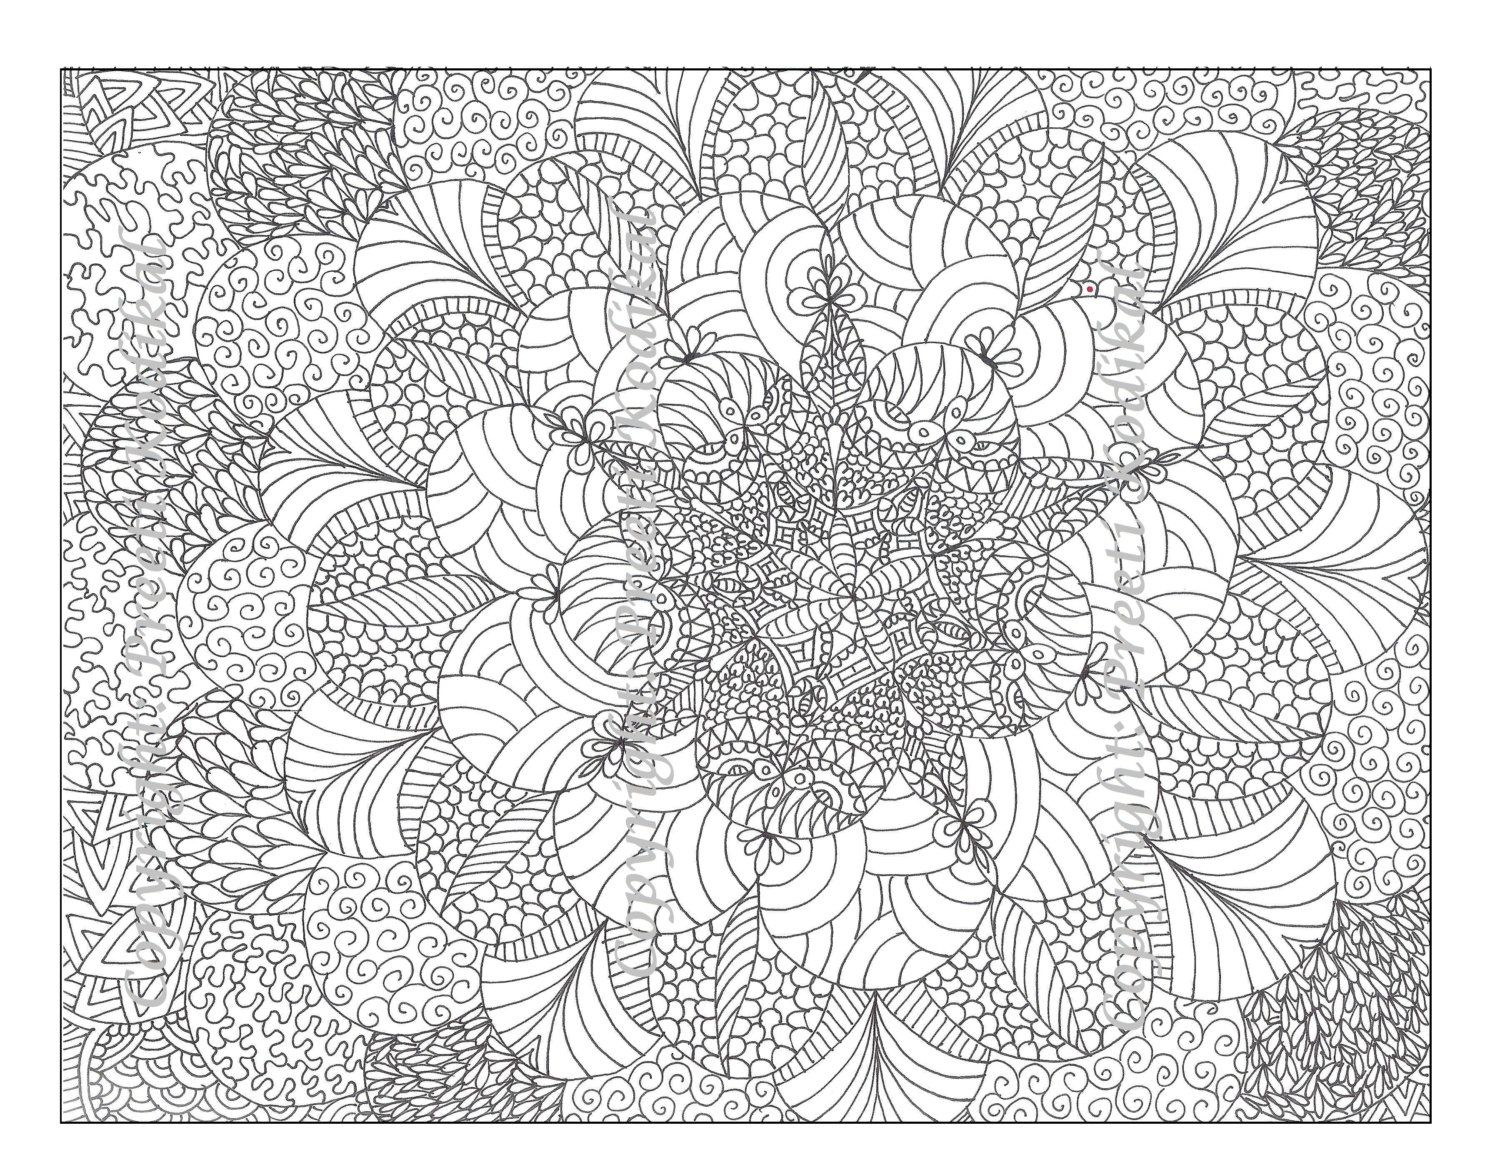 Adult pattern coloring pages printable tagged with detailed coloring page